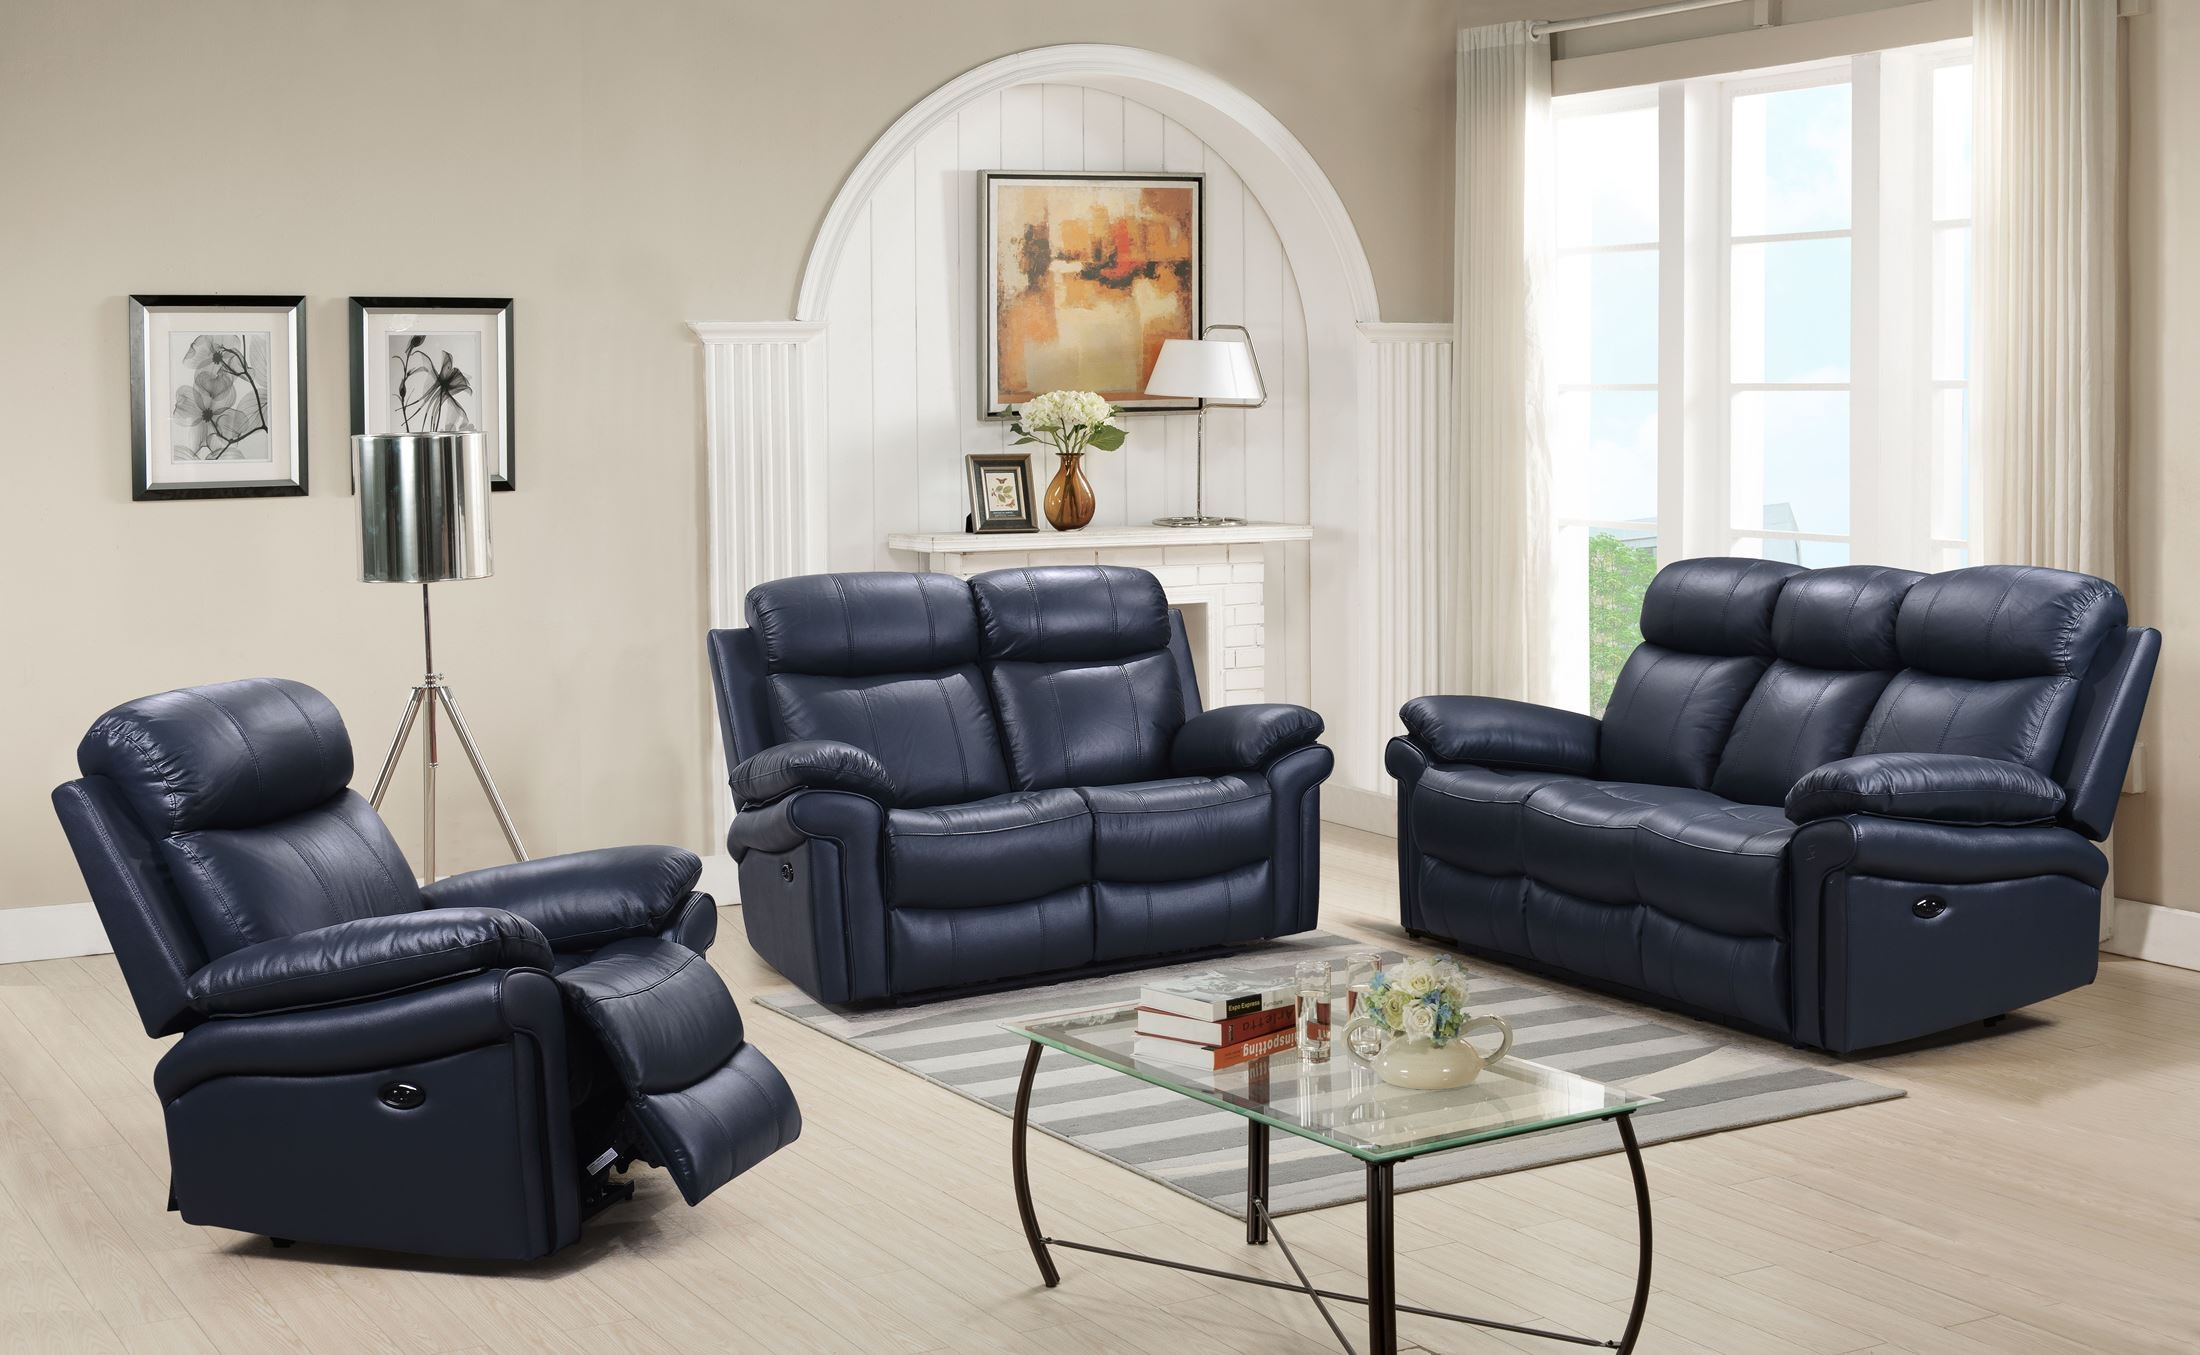 Includes Reclining Sofa Navy Blue Polyester Fabric Frame Constructions Have Been Rigorously Tested To Simulate The Home And Transportation